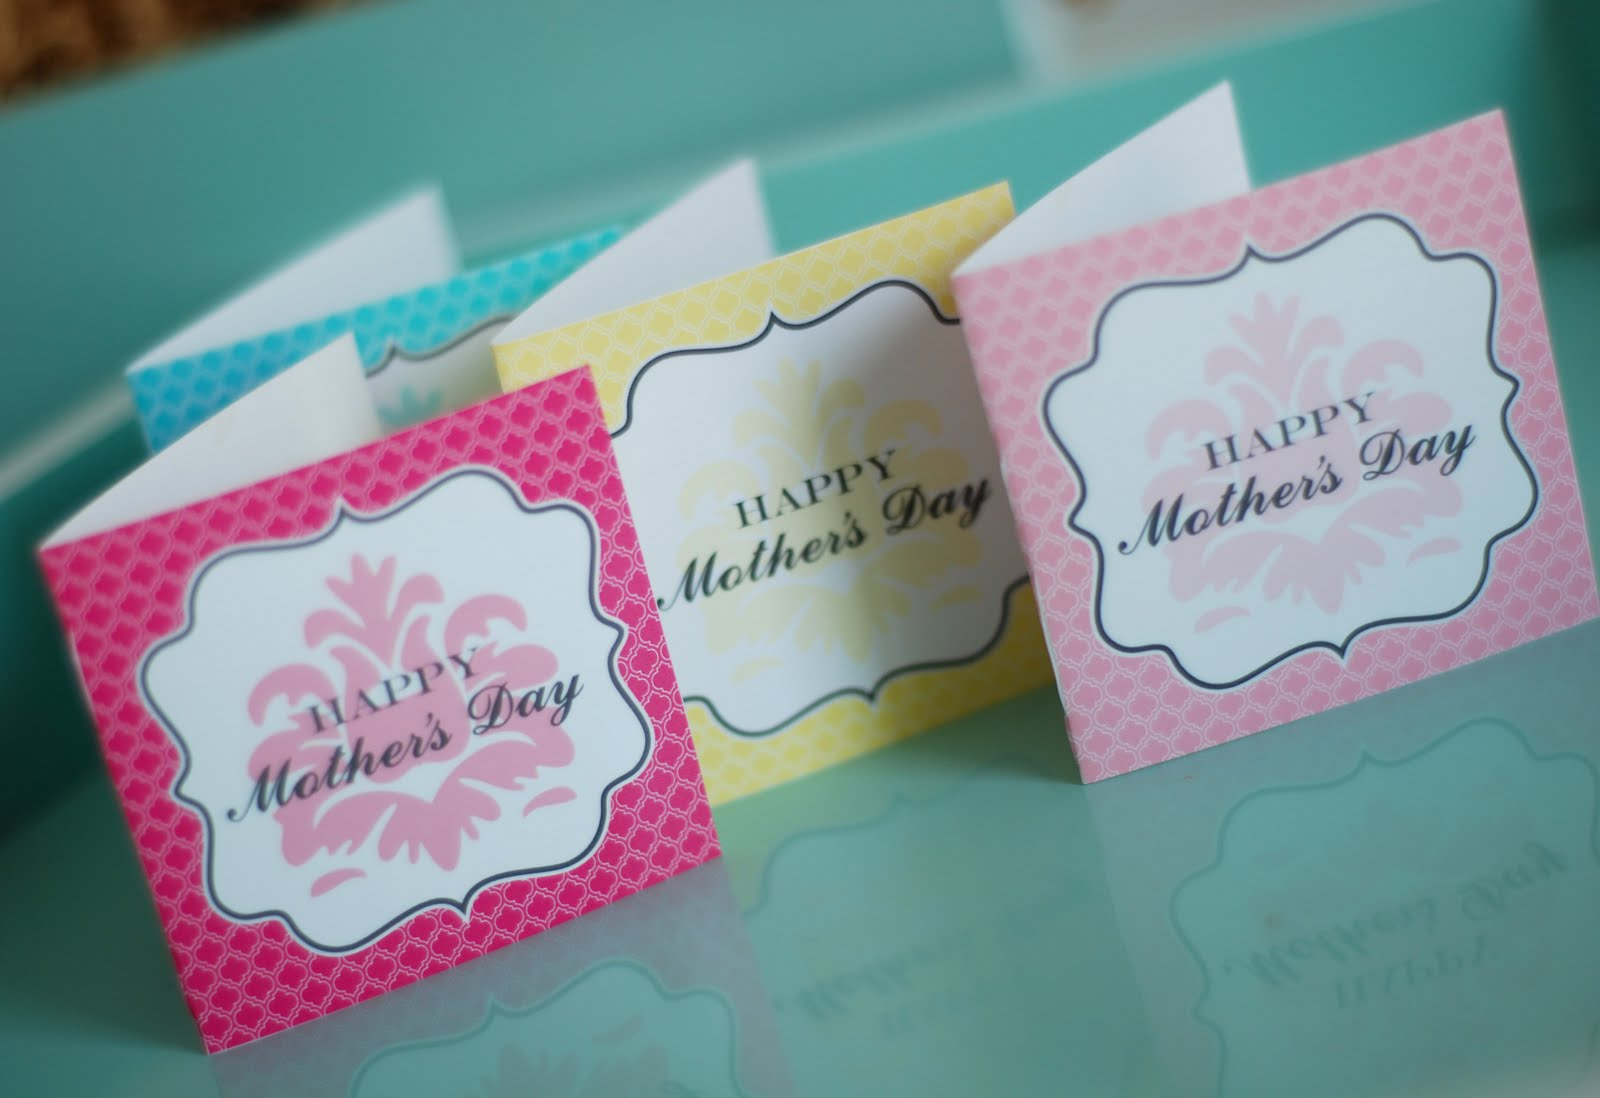 It's just an image of Divine Free Printable Mothers Day Crafts